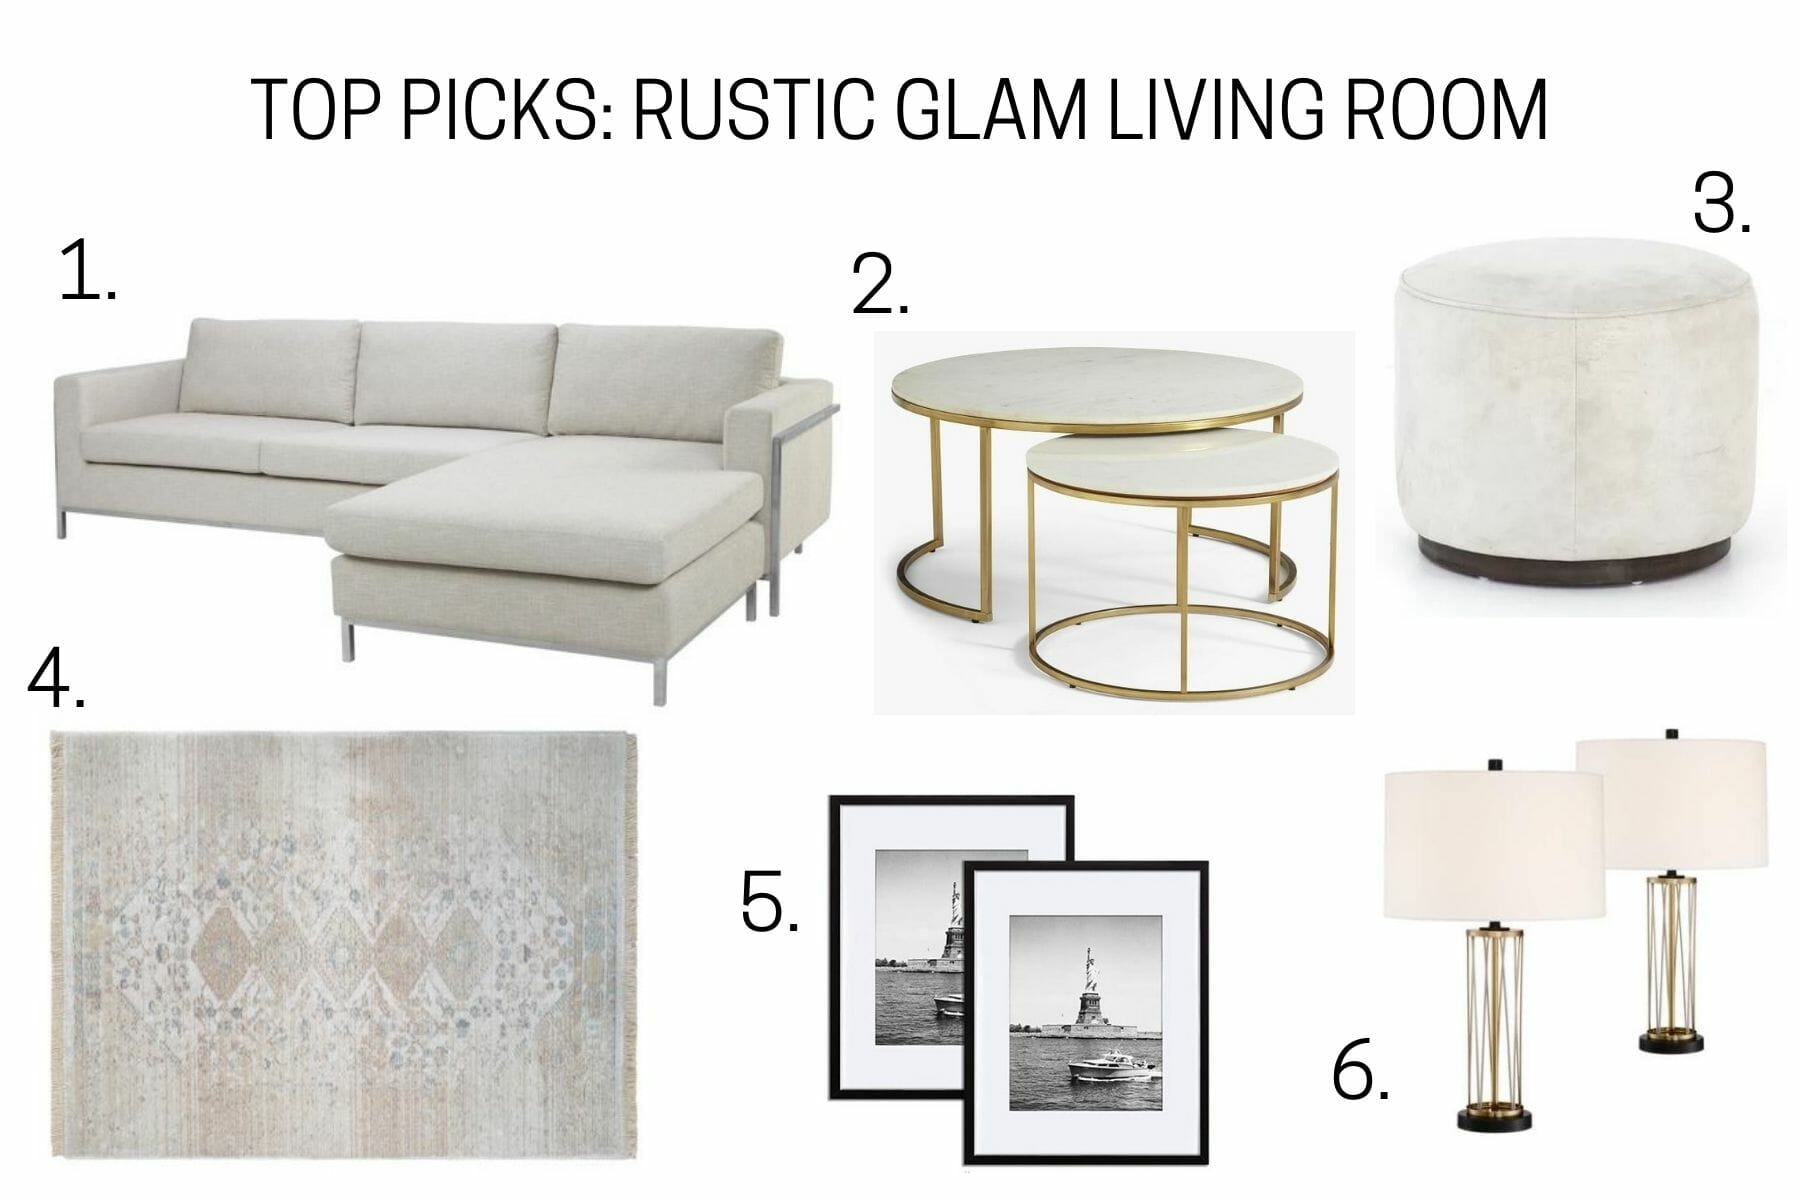 Top picks for rustic glam living room decor